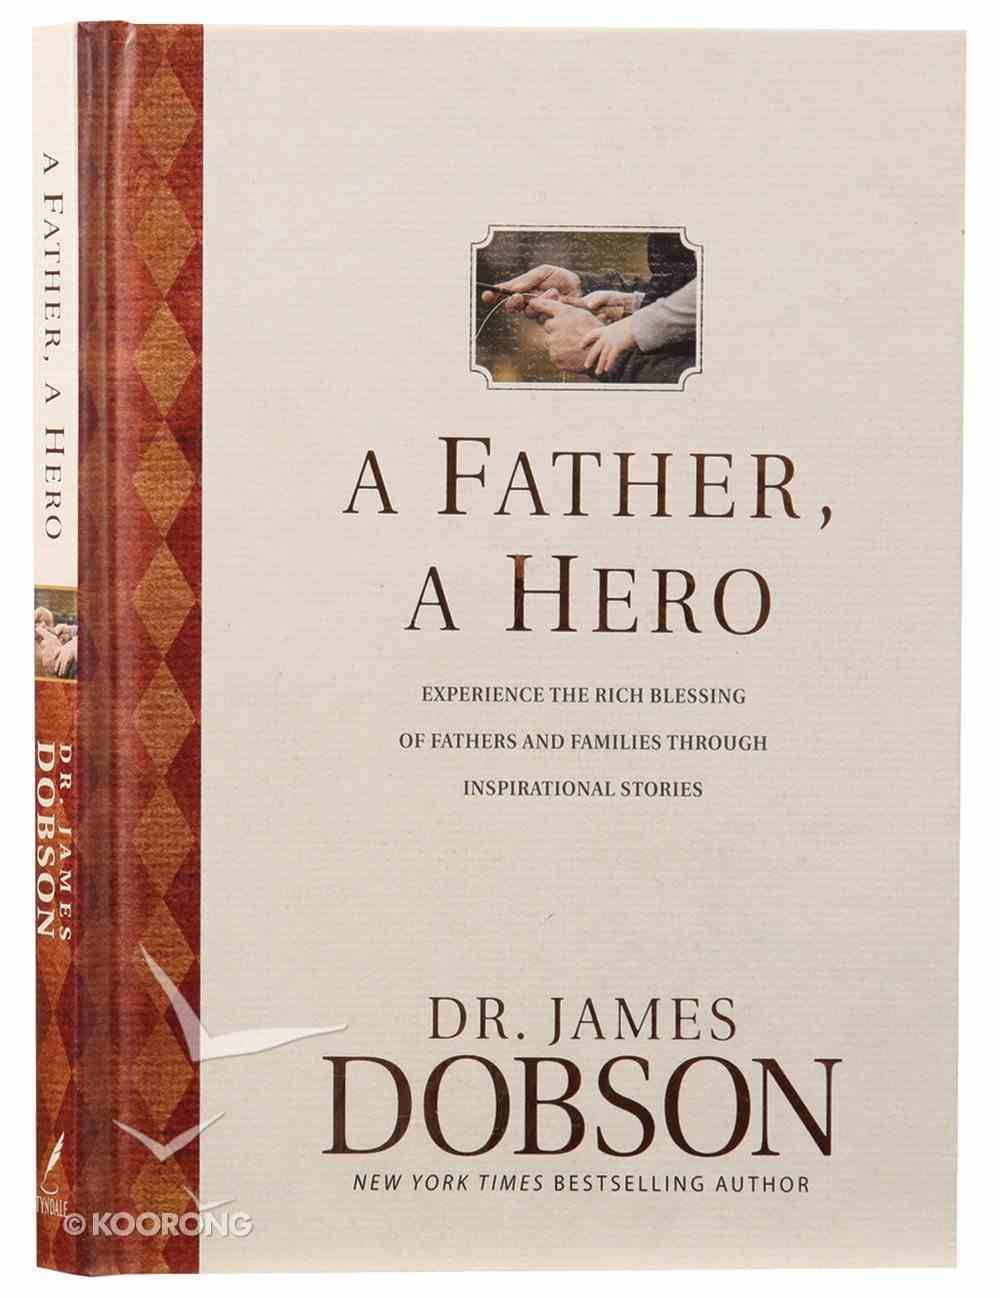 Father, a Hero, a: Experience the Rich Blessing of Fathers and Families Through Inspirational Stories Hardback